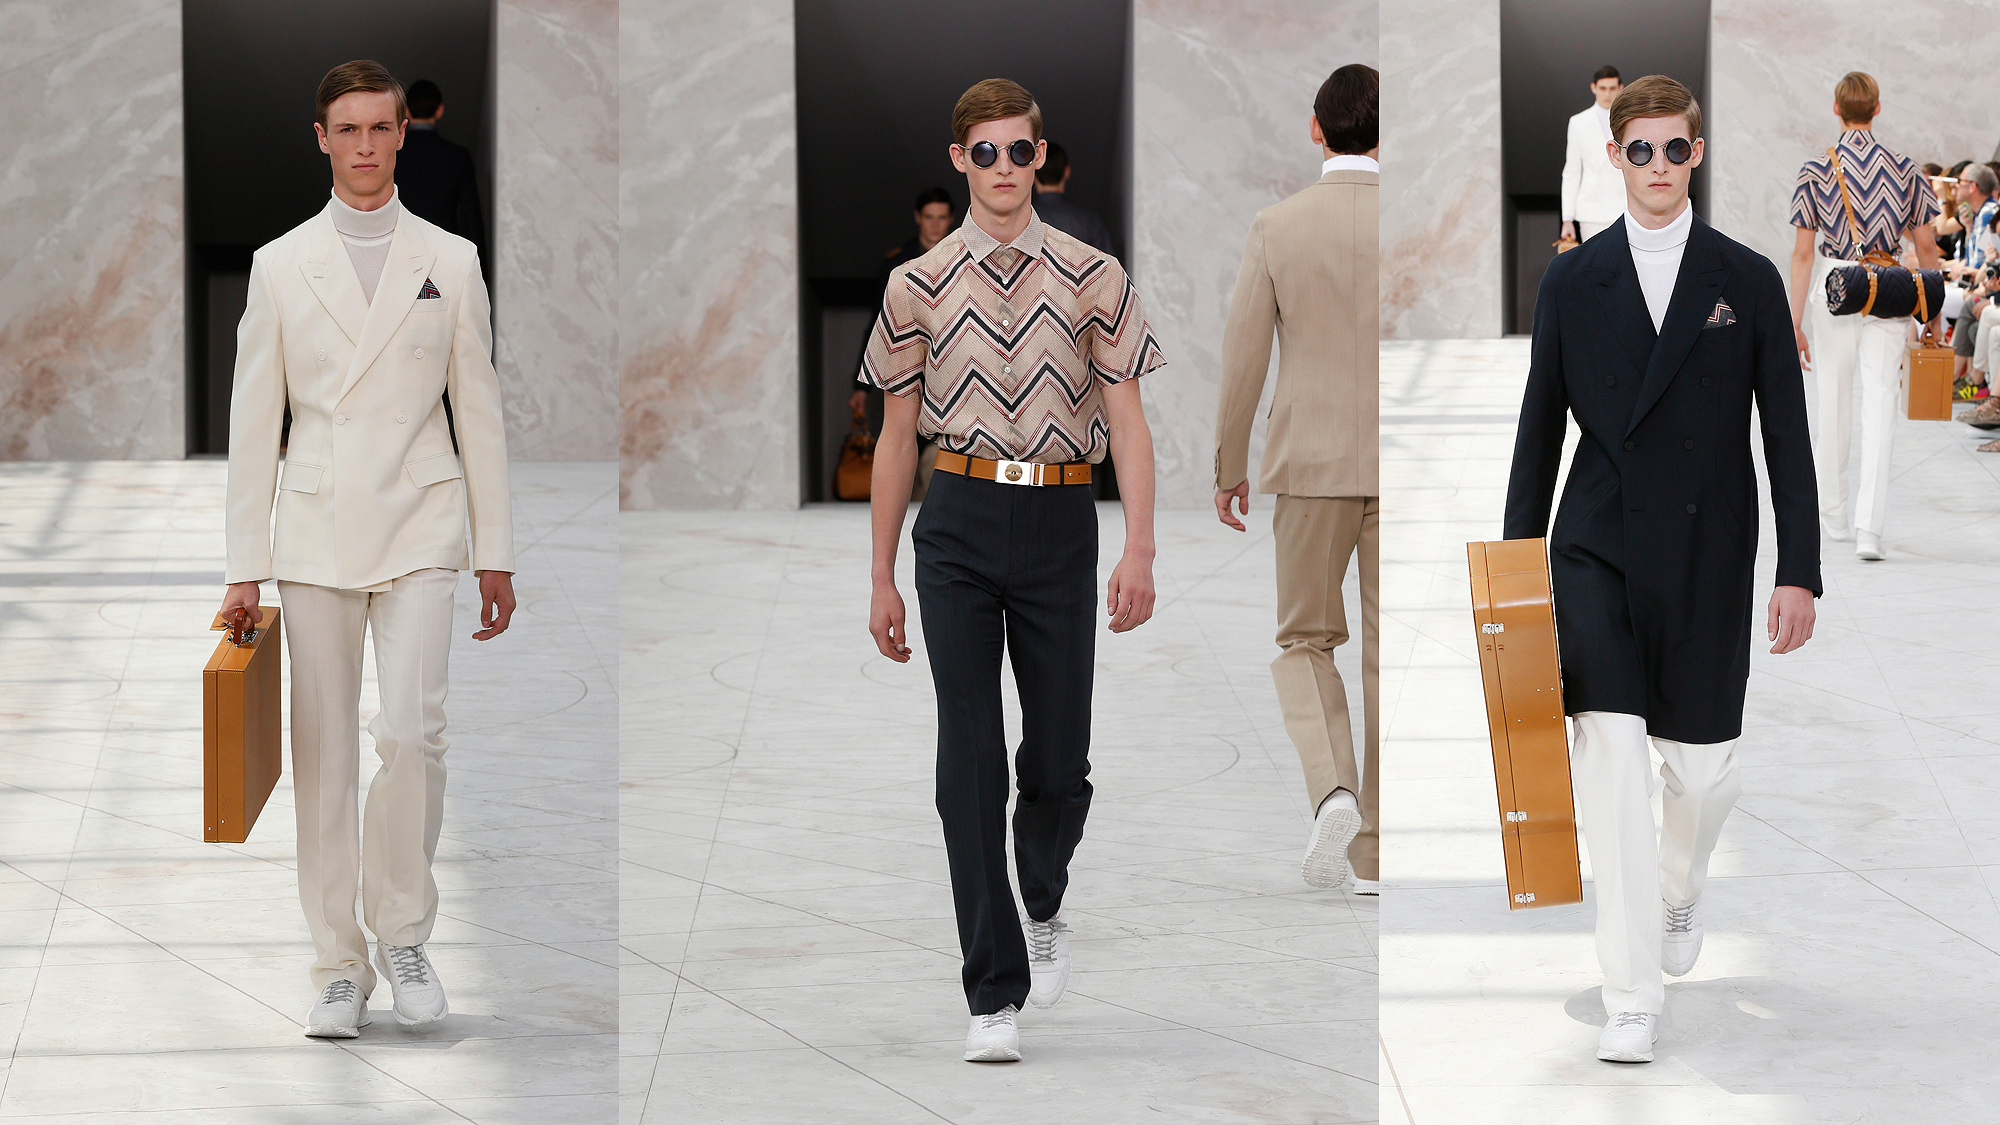 Sigue_El_Desfile_De_Louis_Vuitton_En_Directo_2